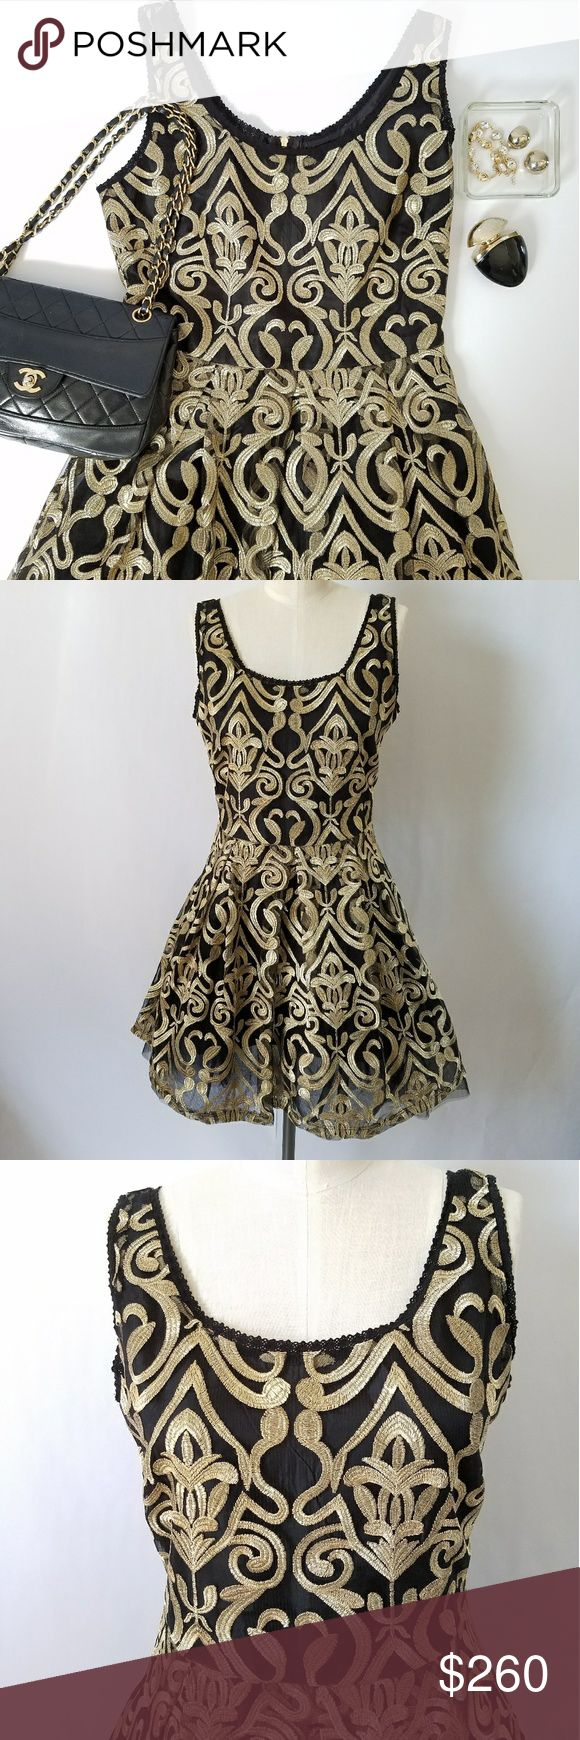 NWT Romeo + Juliet Couture Gold Brocade Dress ✴30% OFF BUNDLES OF 3 OR MORE✴ Rich Black and Gold Brocade Delicate eyelet lace trim at neckline and sleeves Natural waist with full skirt 3 layers of tulle for extra fullness Gold exposed center back zipper Fully lined  PLEASE READ CLOSET INFO AND POLICIES POST Romeo & Juliet Couture Dresses